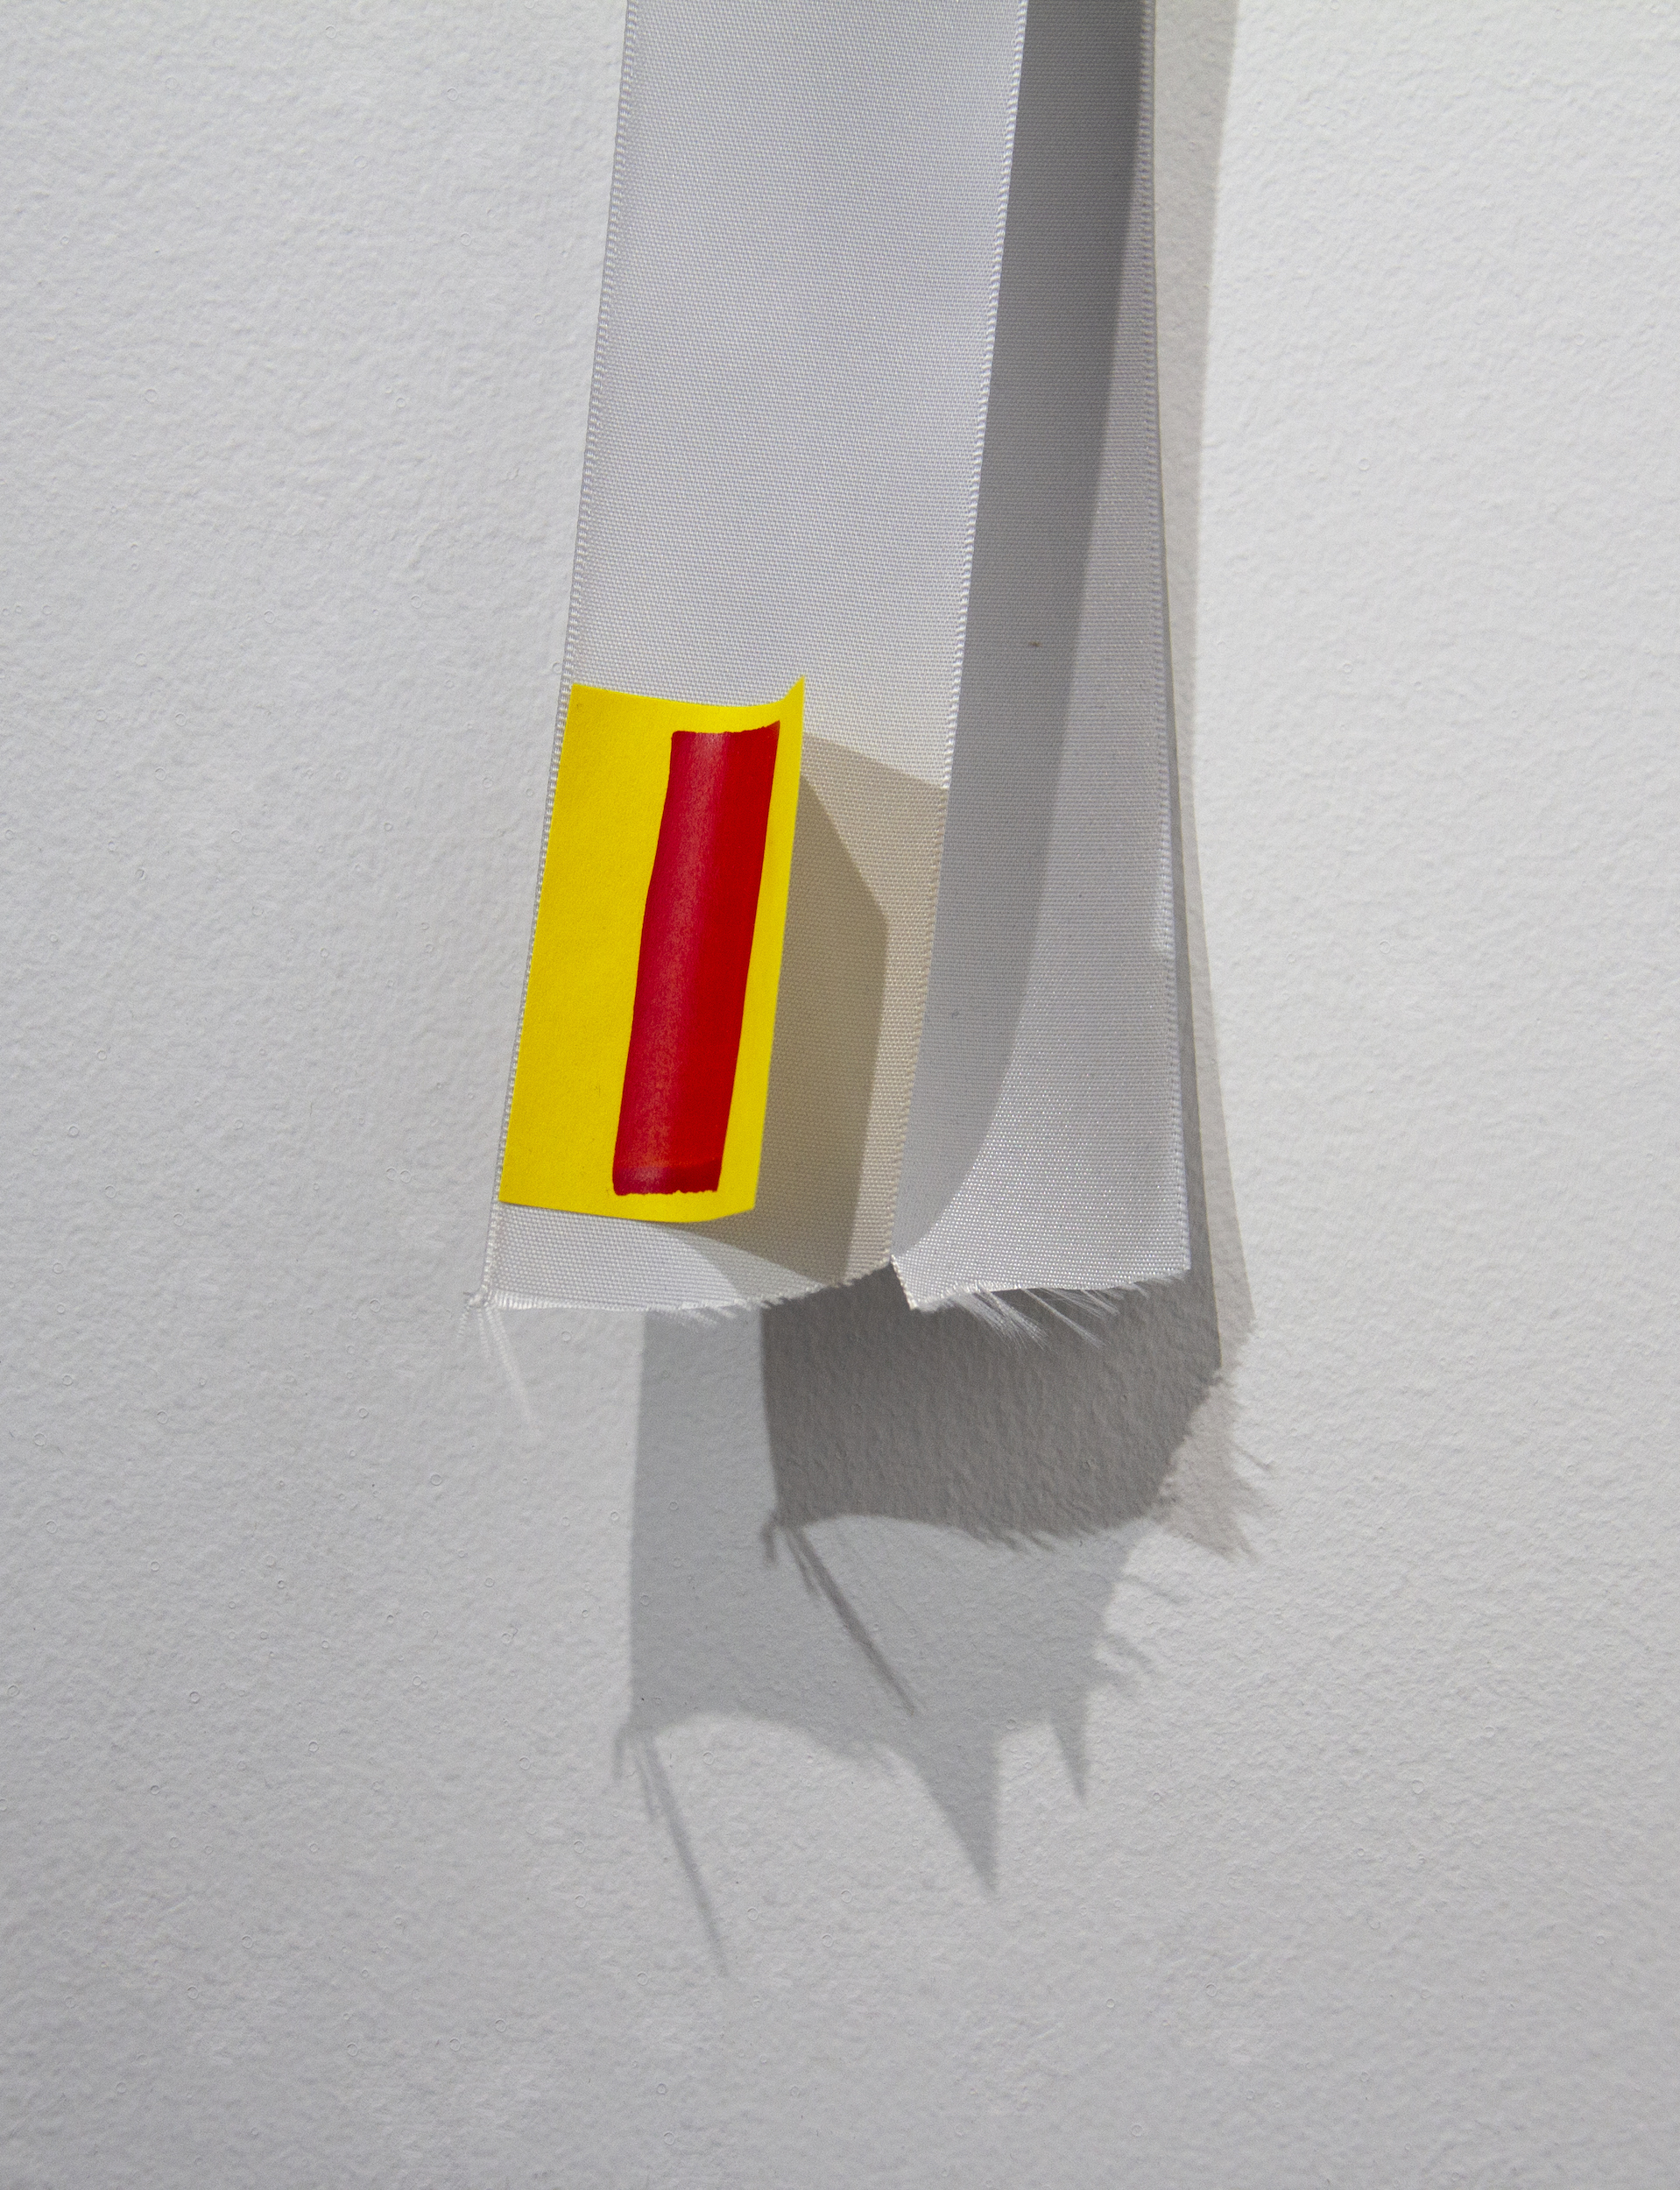 The Vow   (detail)  Acrylic paint on Post-it, anniversary bouquet ribbon, used grocery packaging, found wooden stick and metal mesh, and pin  Approx. 40 x 13 x 2 1/2 inches  2018